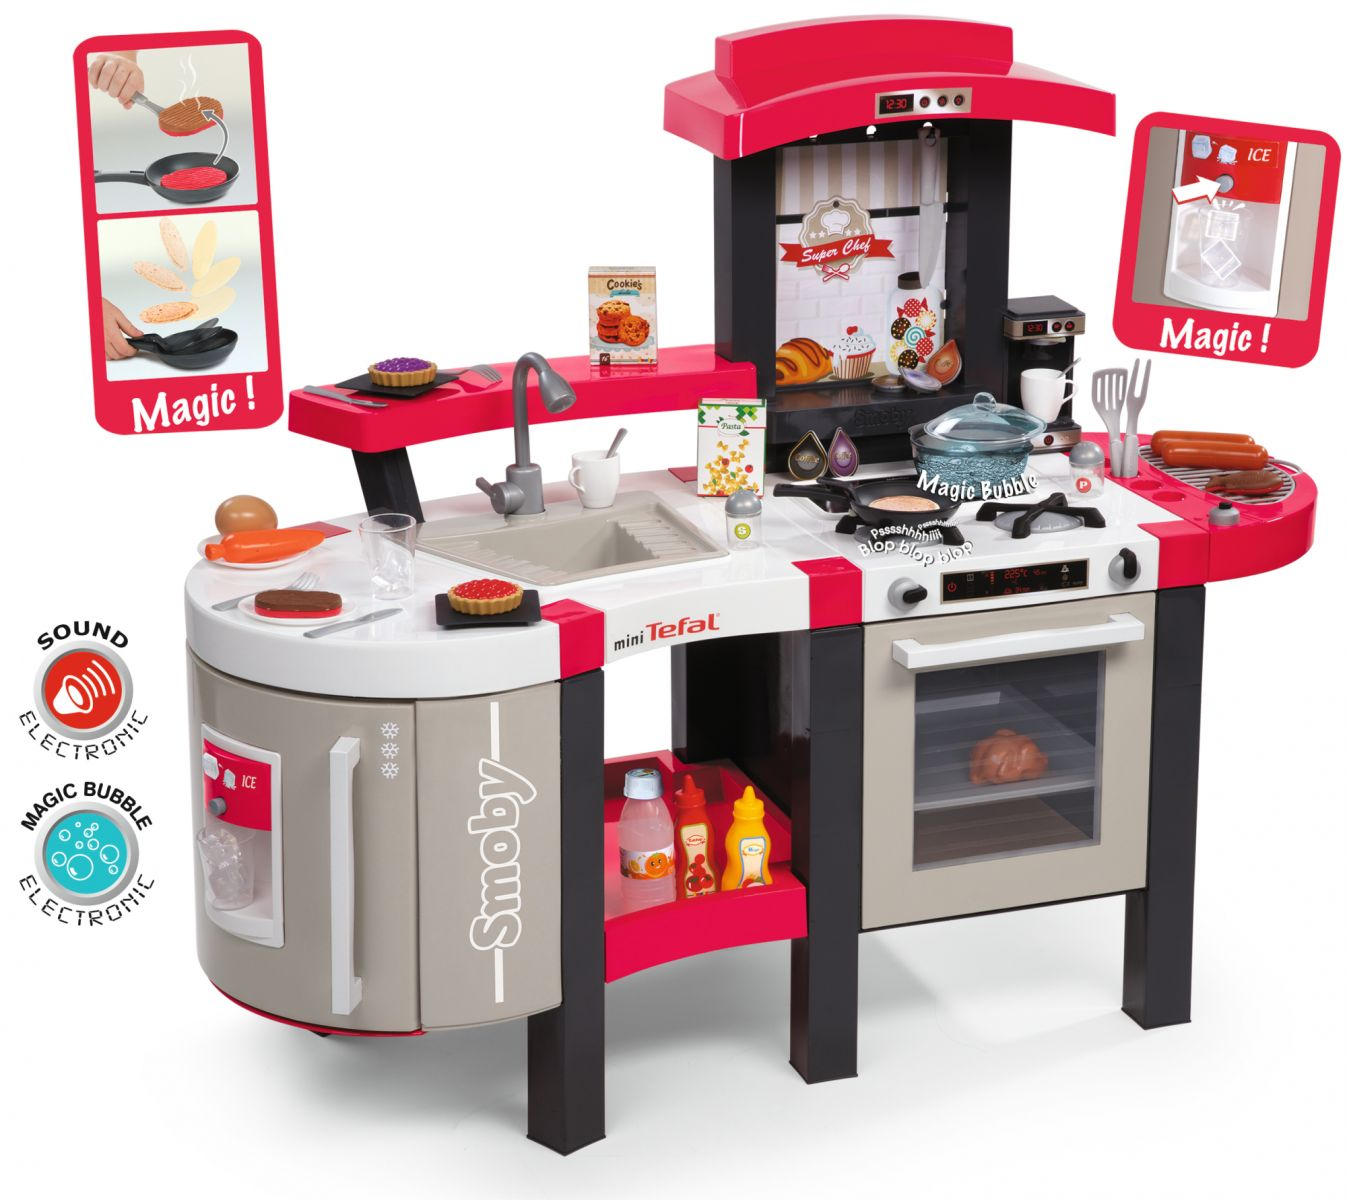 smoby tefal super chef kitchen childrens kitchens role play toys toy kitc ebay. Black Bedroom Furniture Sets. Home Design Ideas